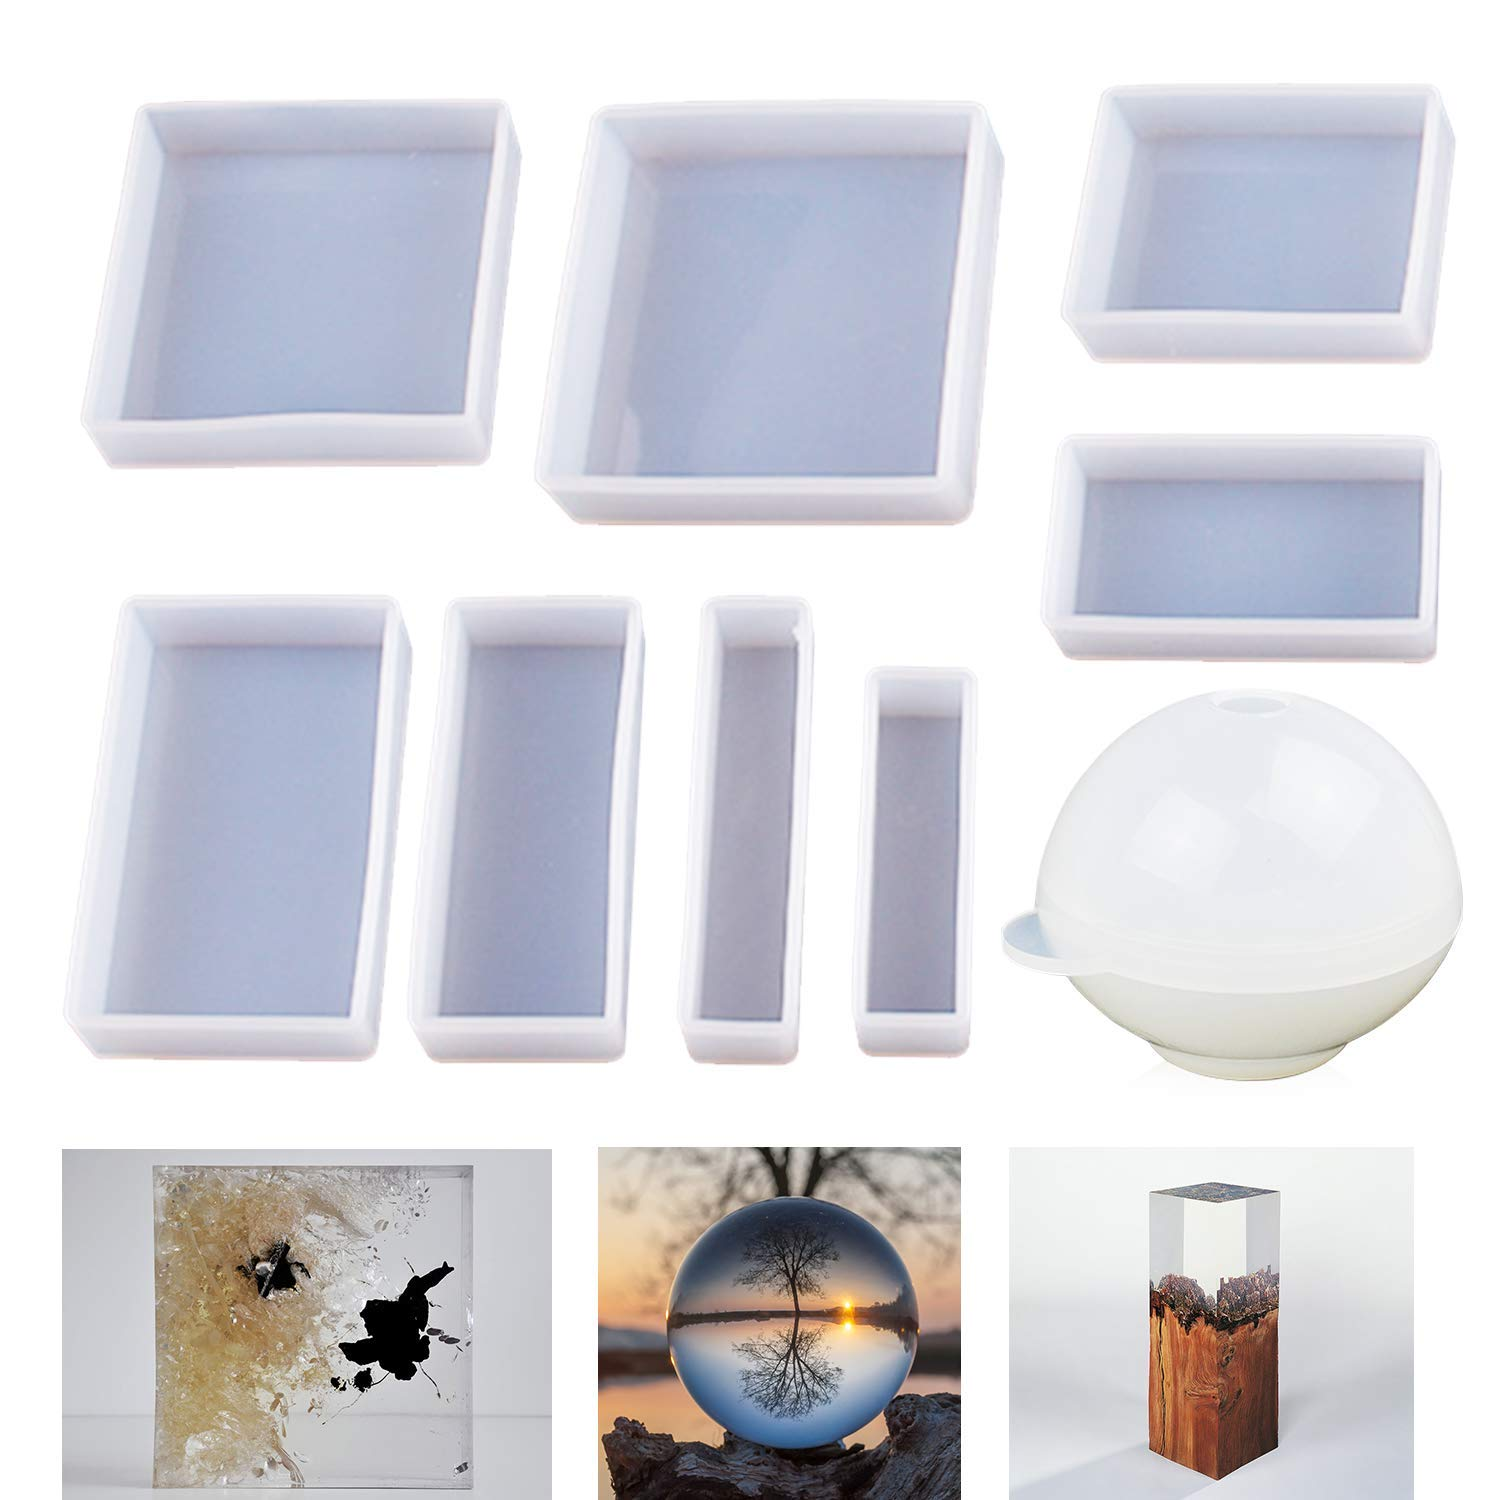 Art Resin Molds Square Concrete Mold for Coaster Photo Frame Craft Art Silicone Mould